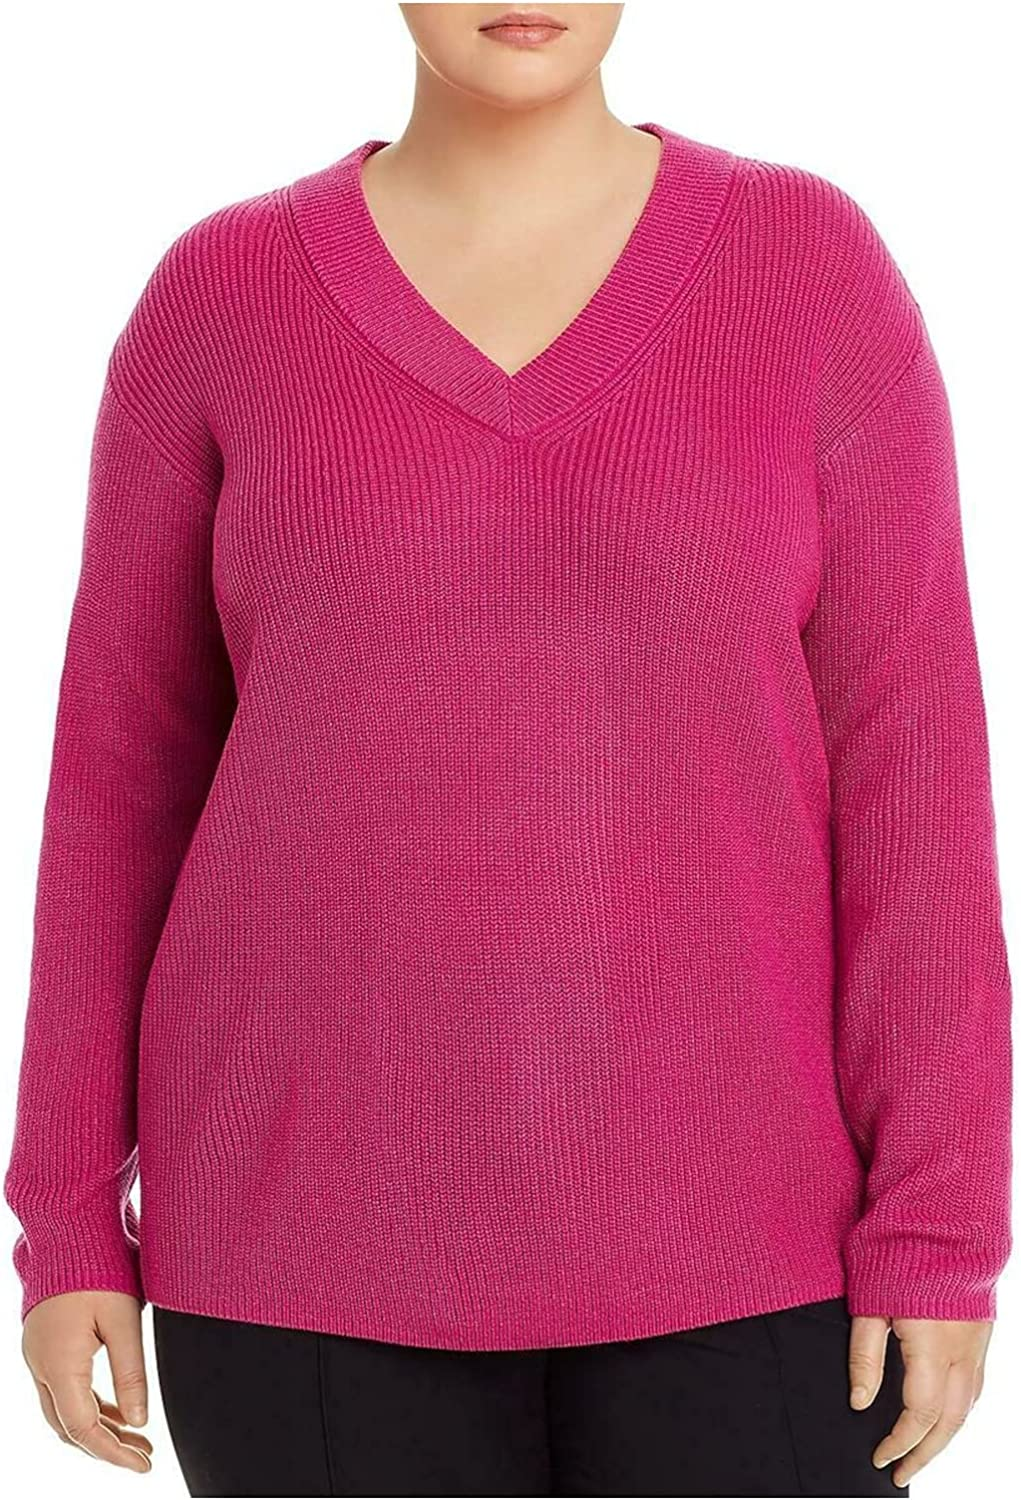 Vince Camuto Womens Plus Ribbed V-Neck Pullover Sweater